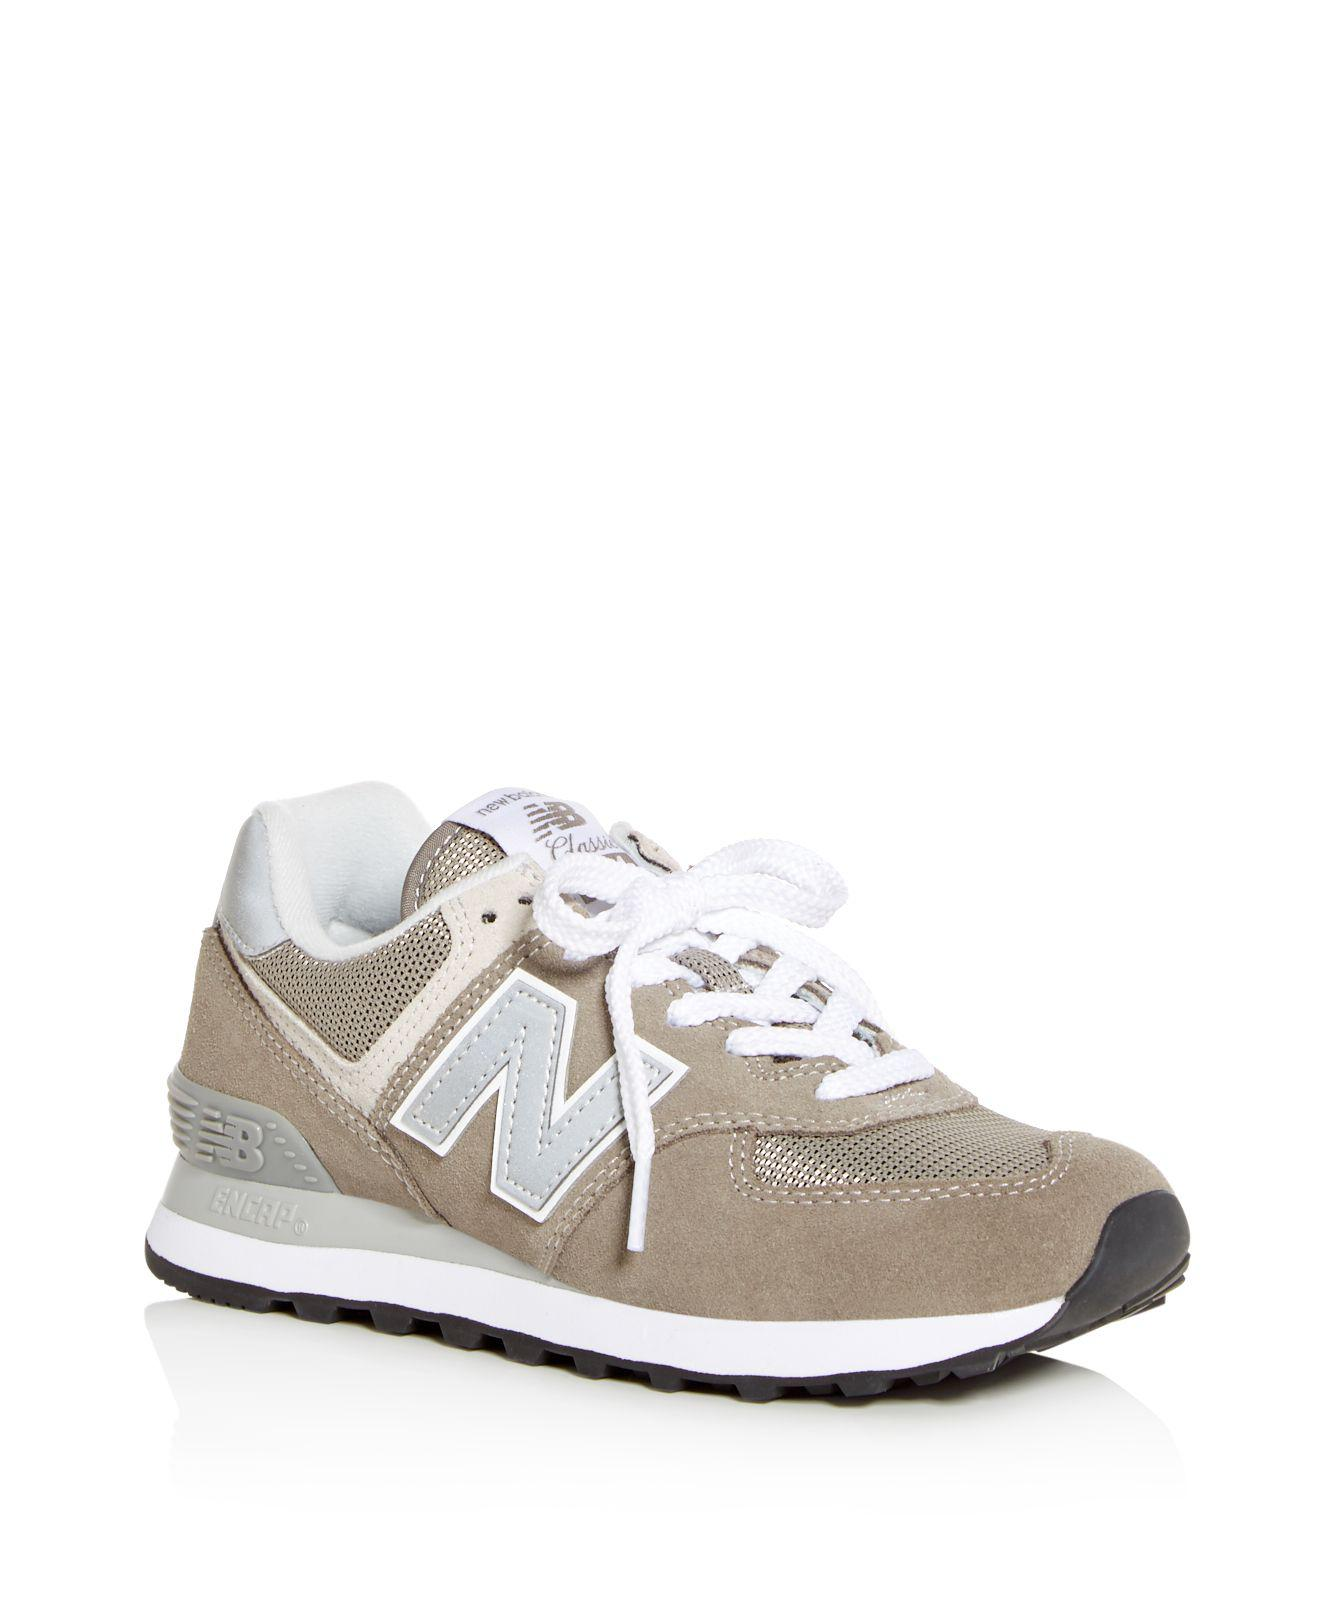 New Balance Women's 574 Suede Lace Up Sneakers yeErCVB7rB